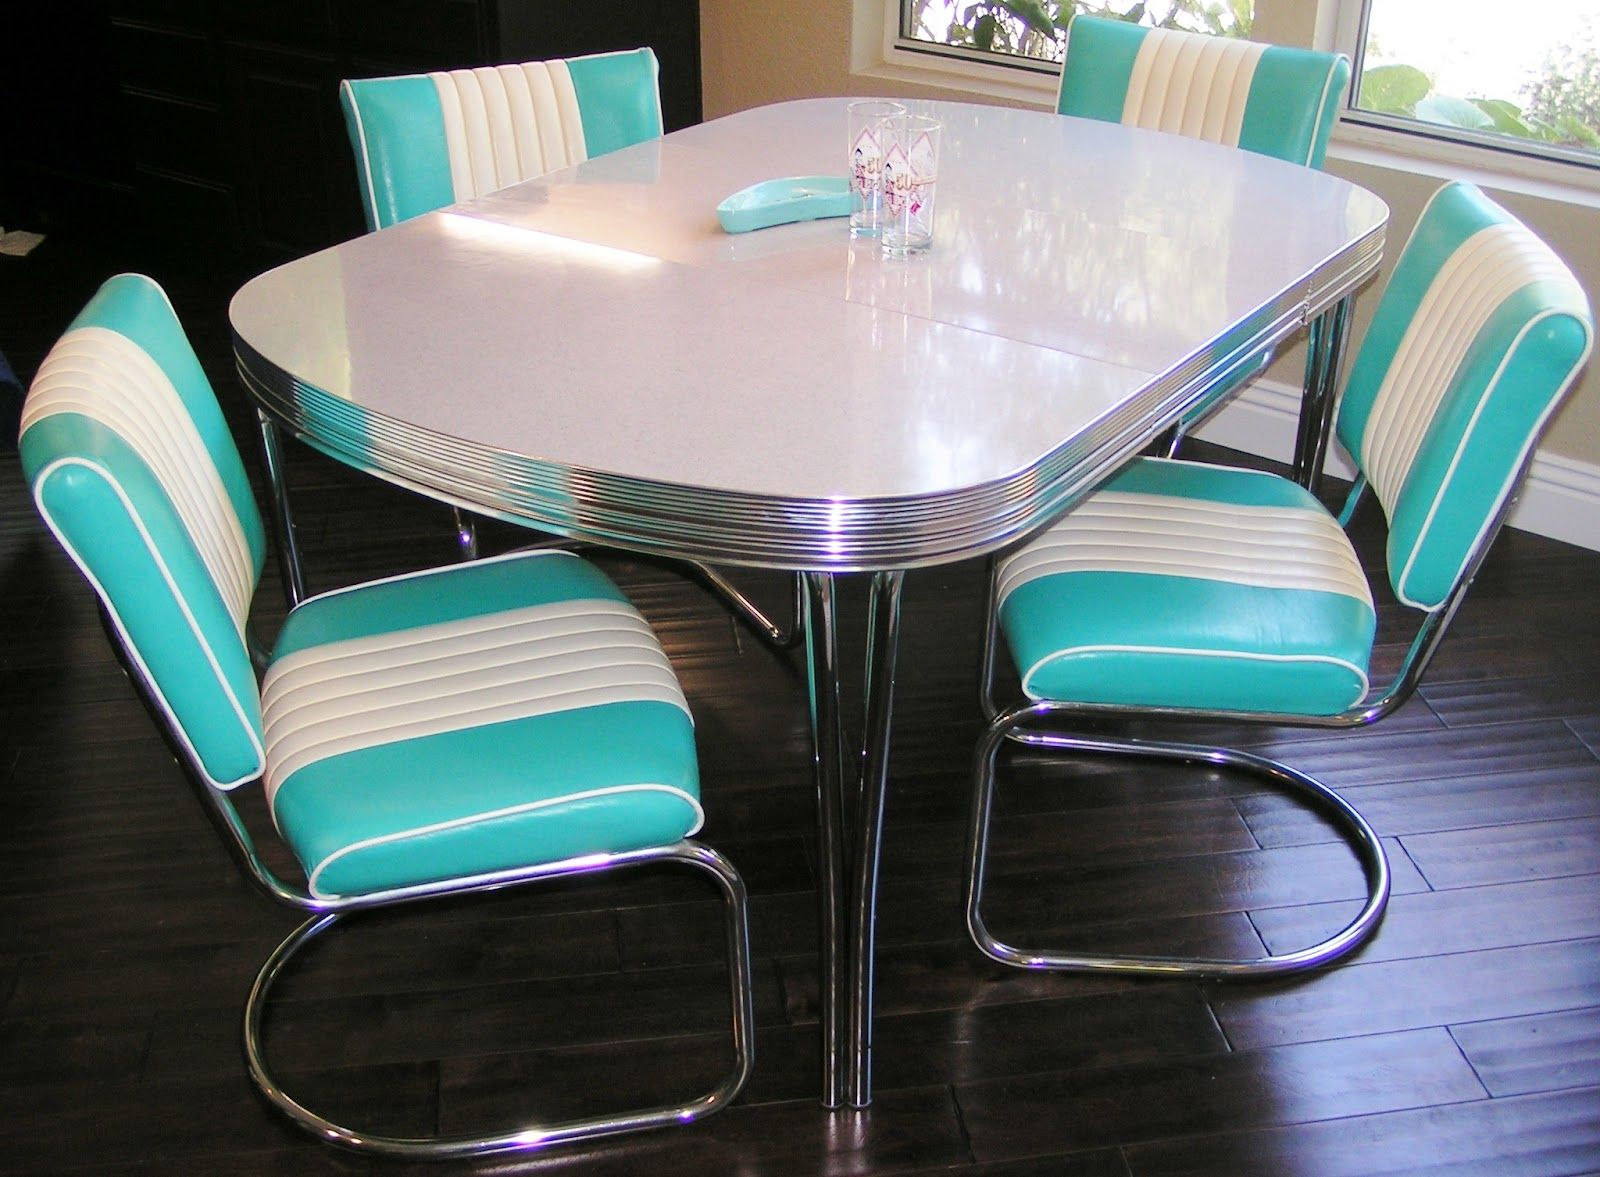 Formica Table And Chairs Google Image Result For Http 3 Bp Blogspot